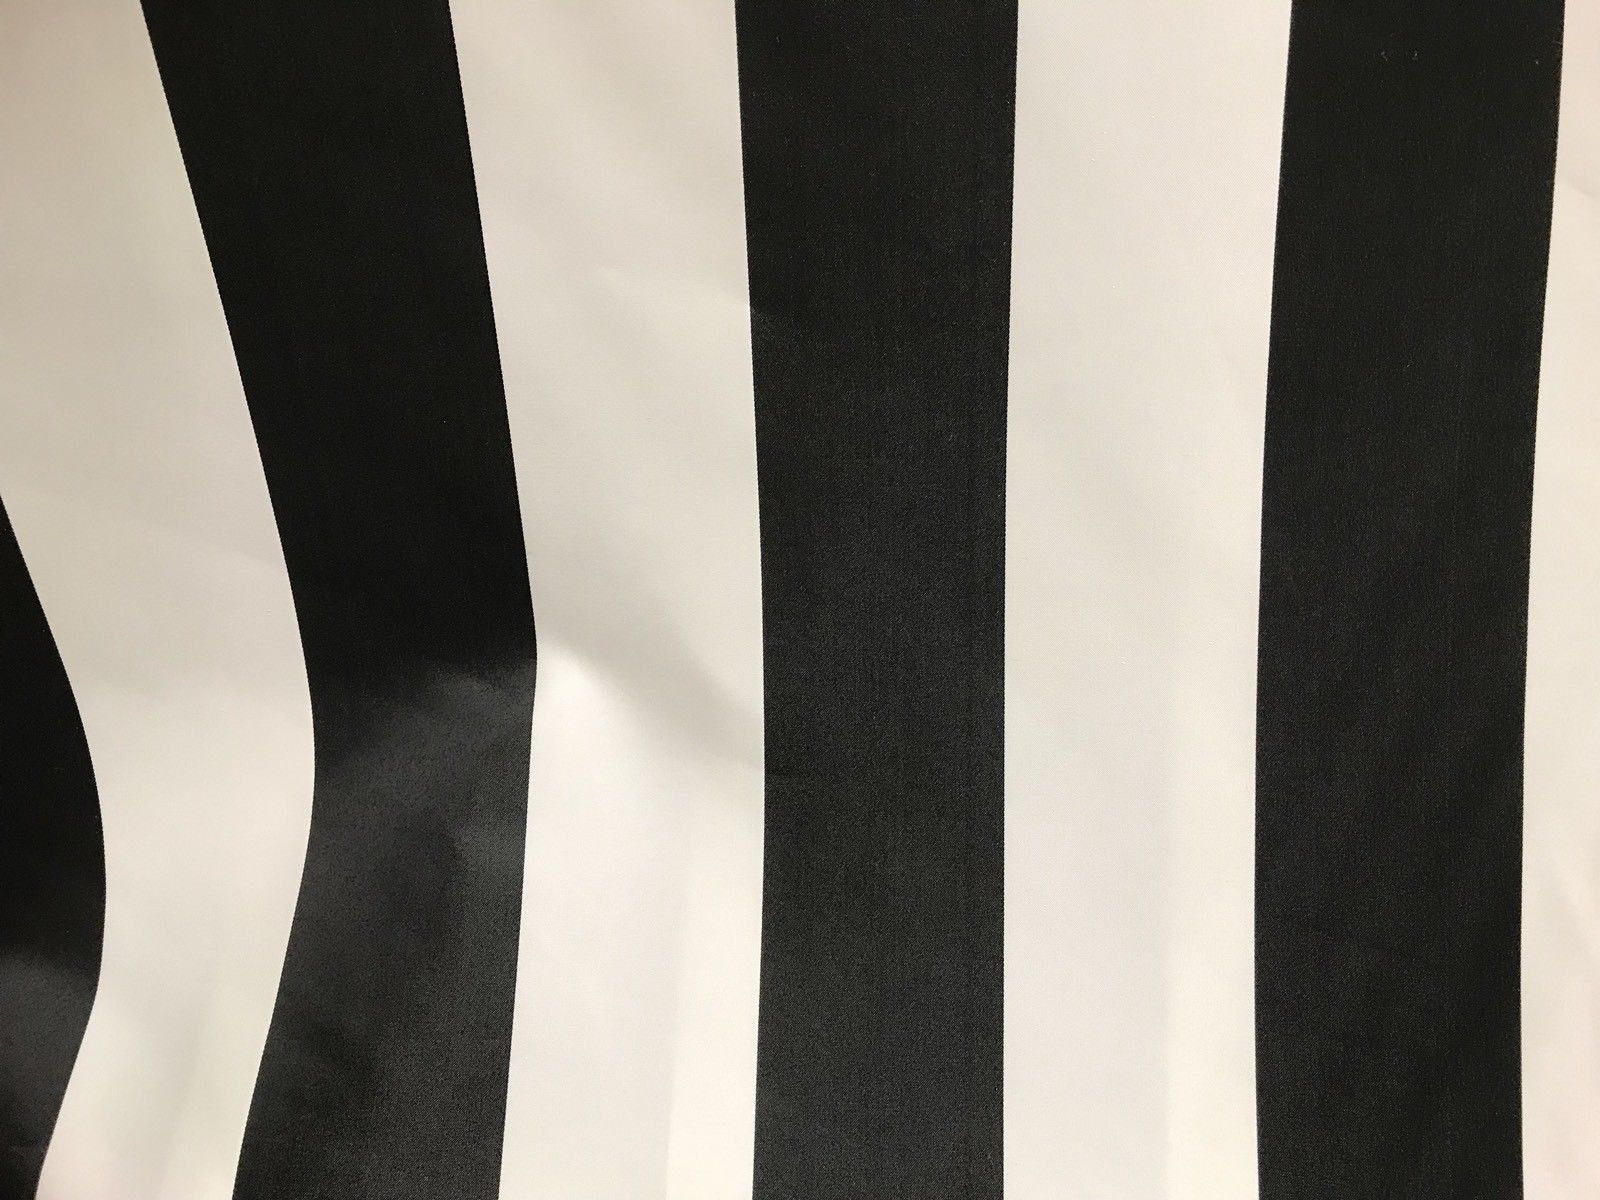 SWATCH Designer Satin Brocade Fabric - Black And White Stripes -  Upholstery - Fancy Styles Fabric Boutique